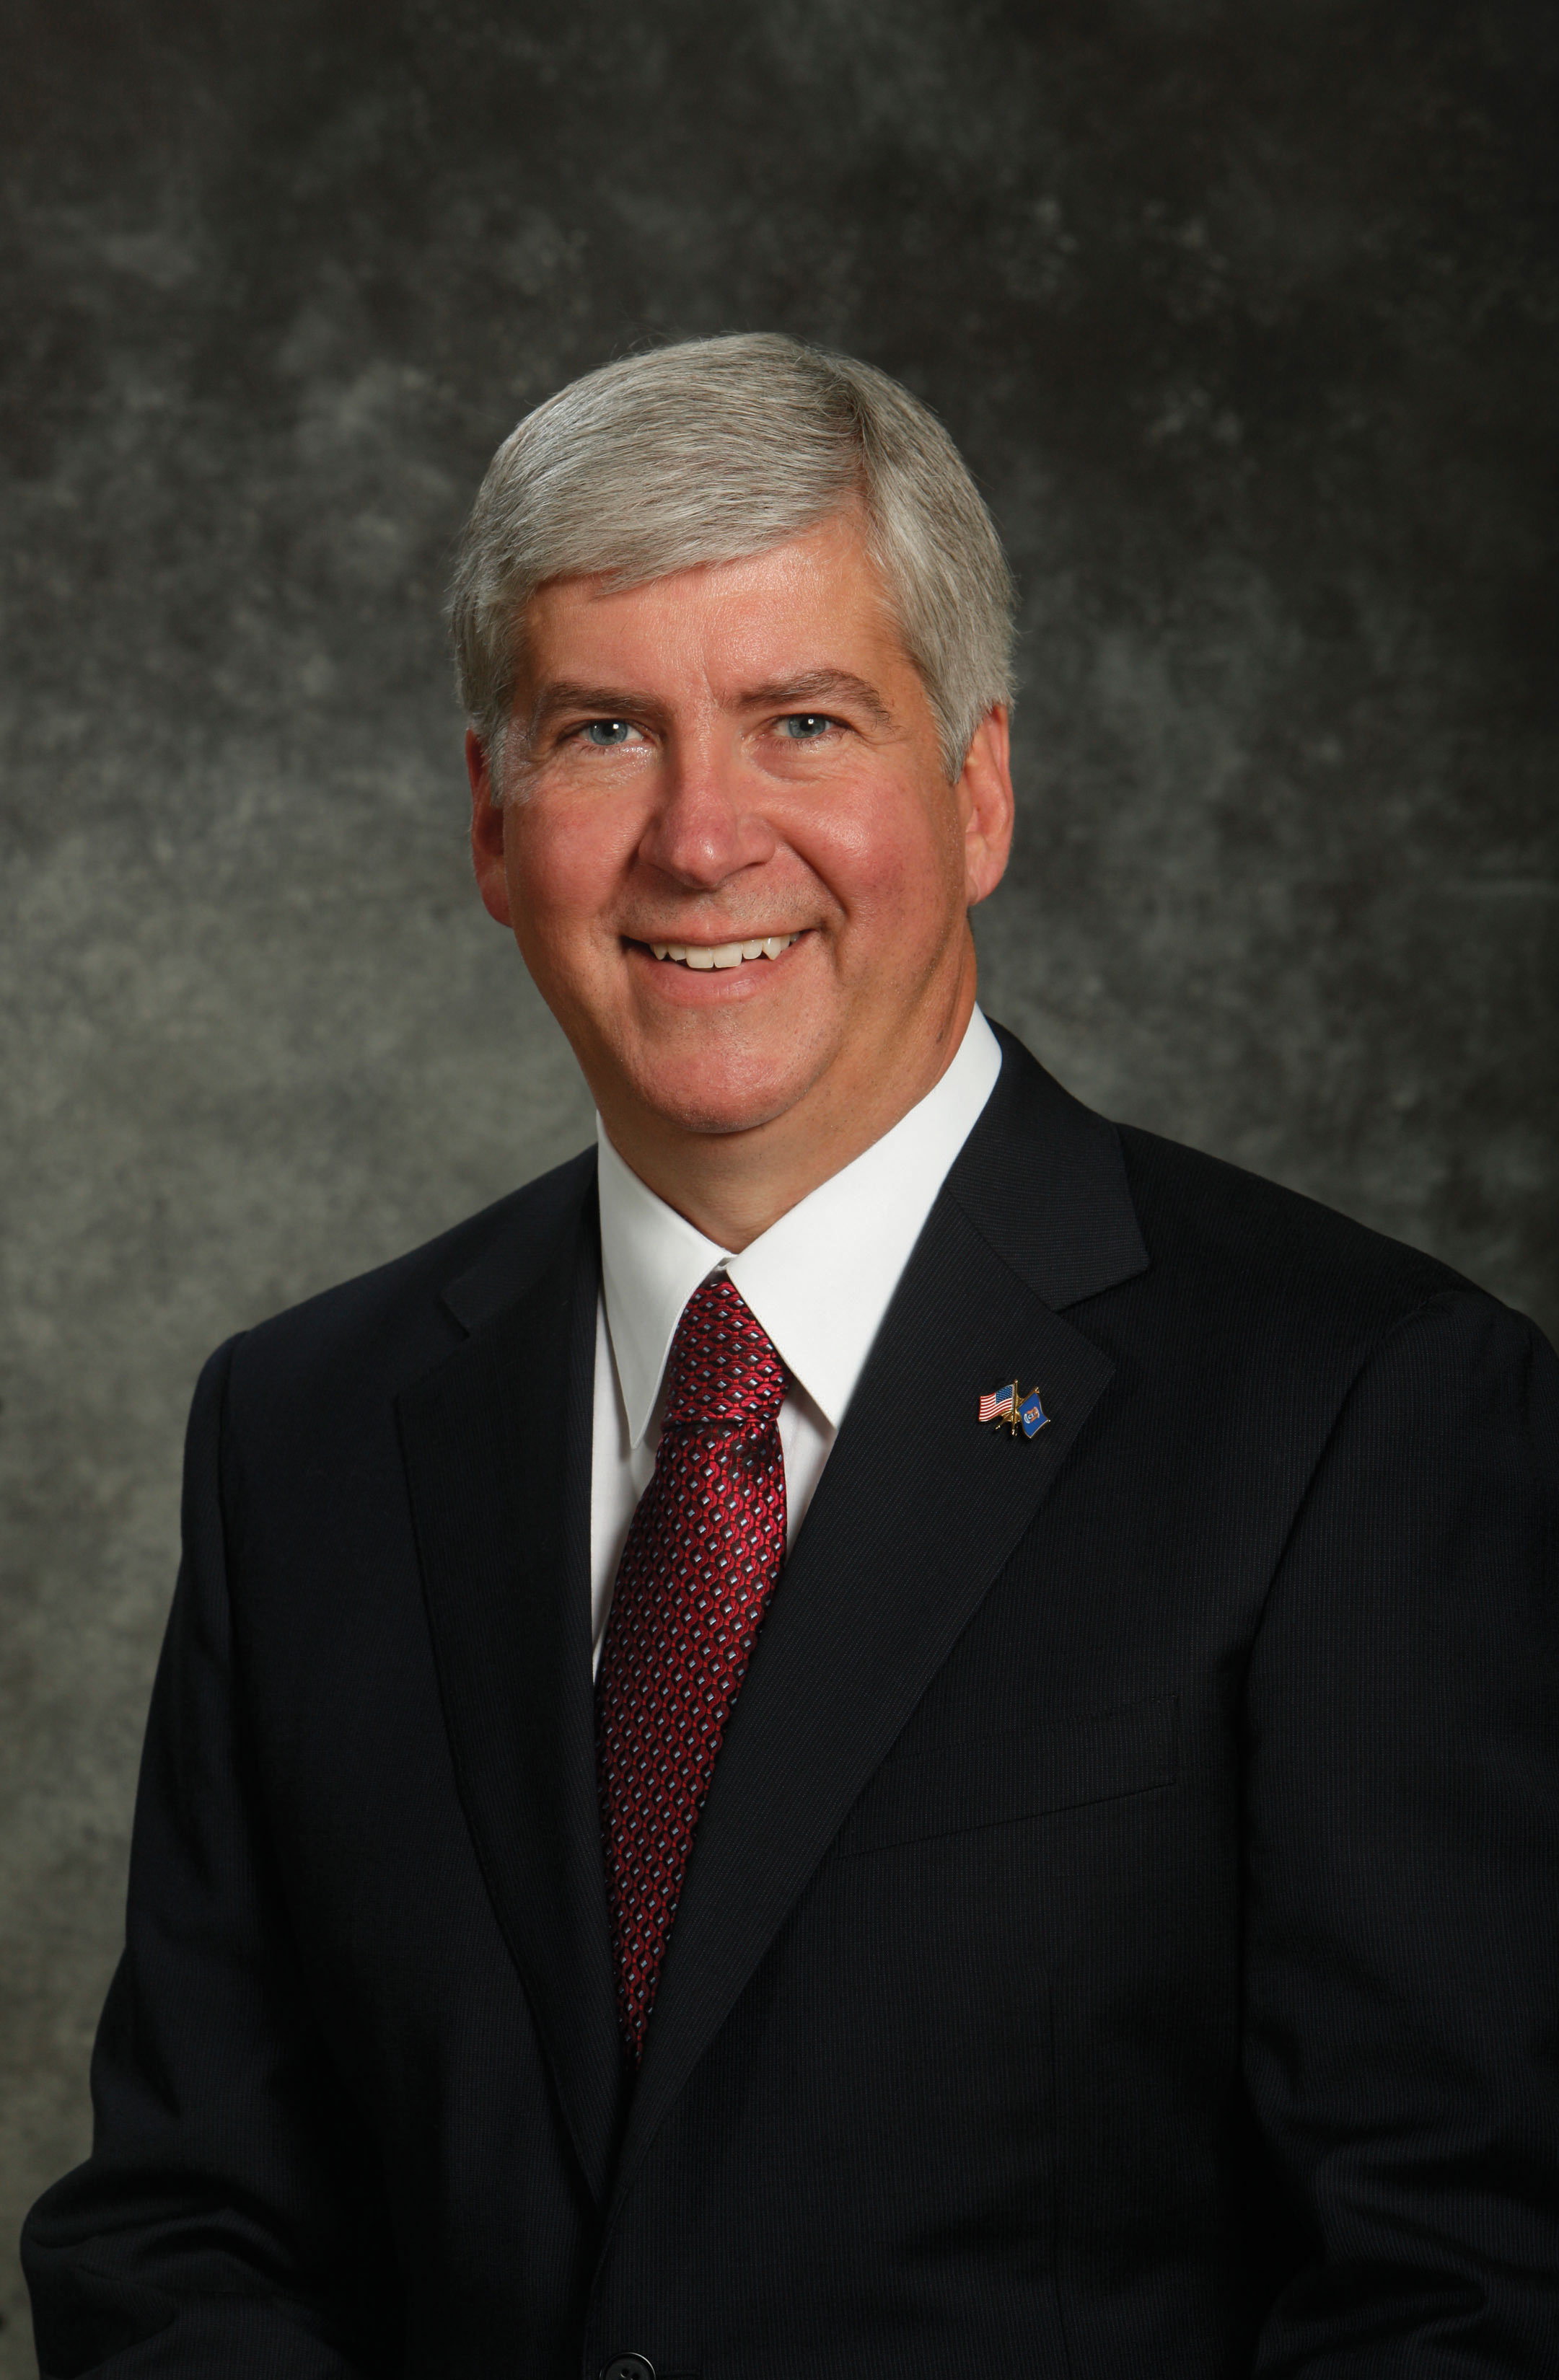 Governor Rick Snyder, Michigan